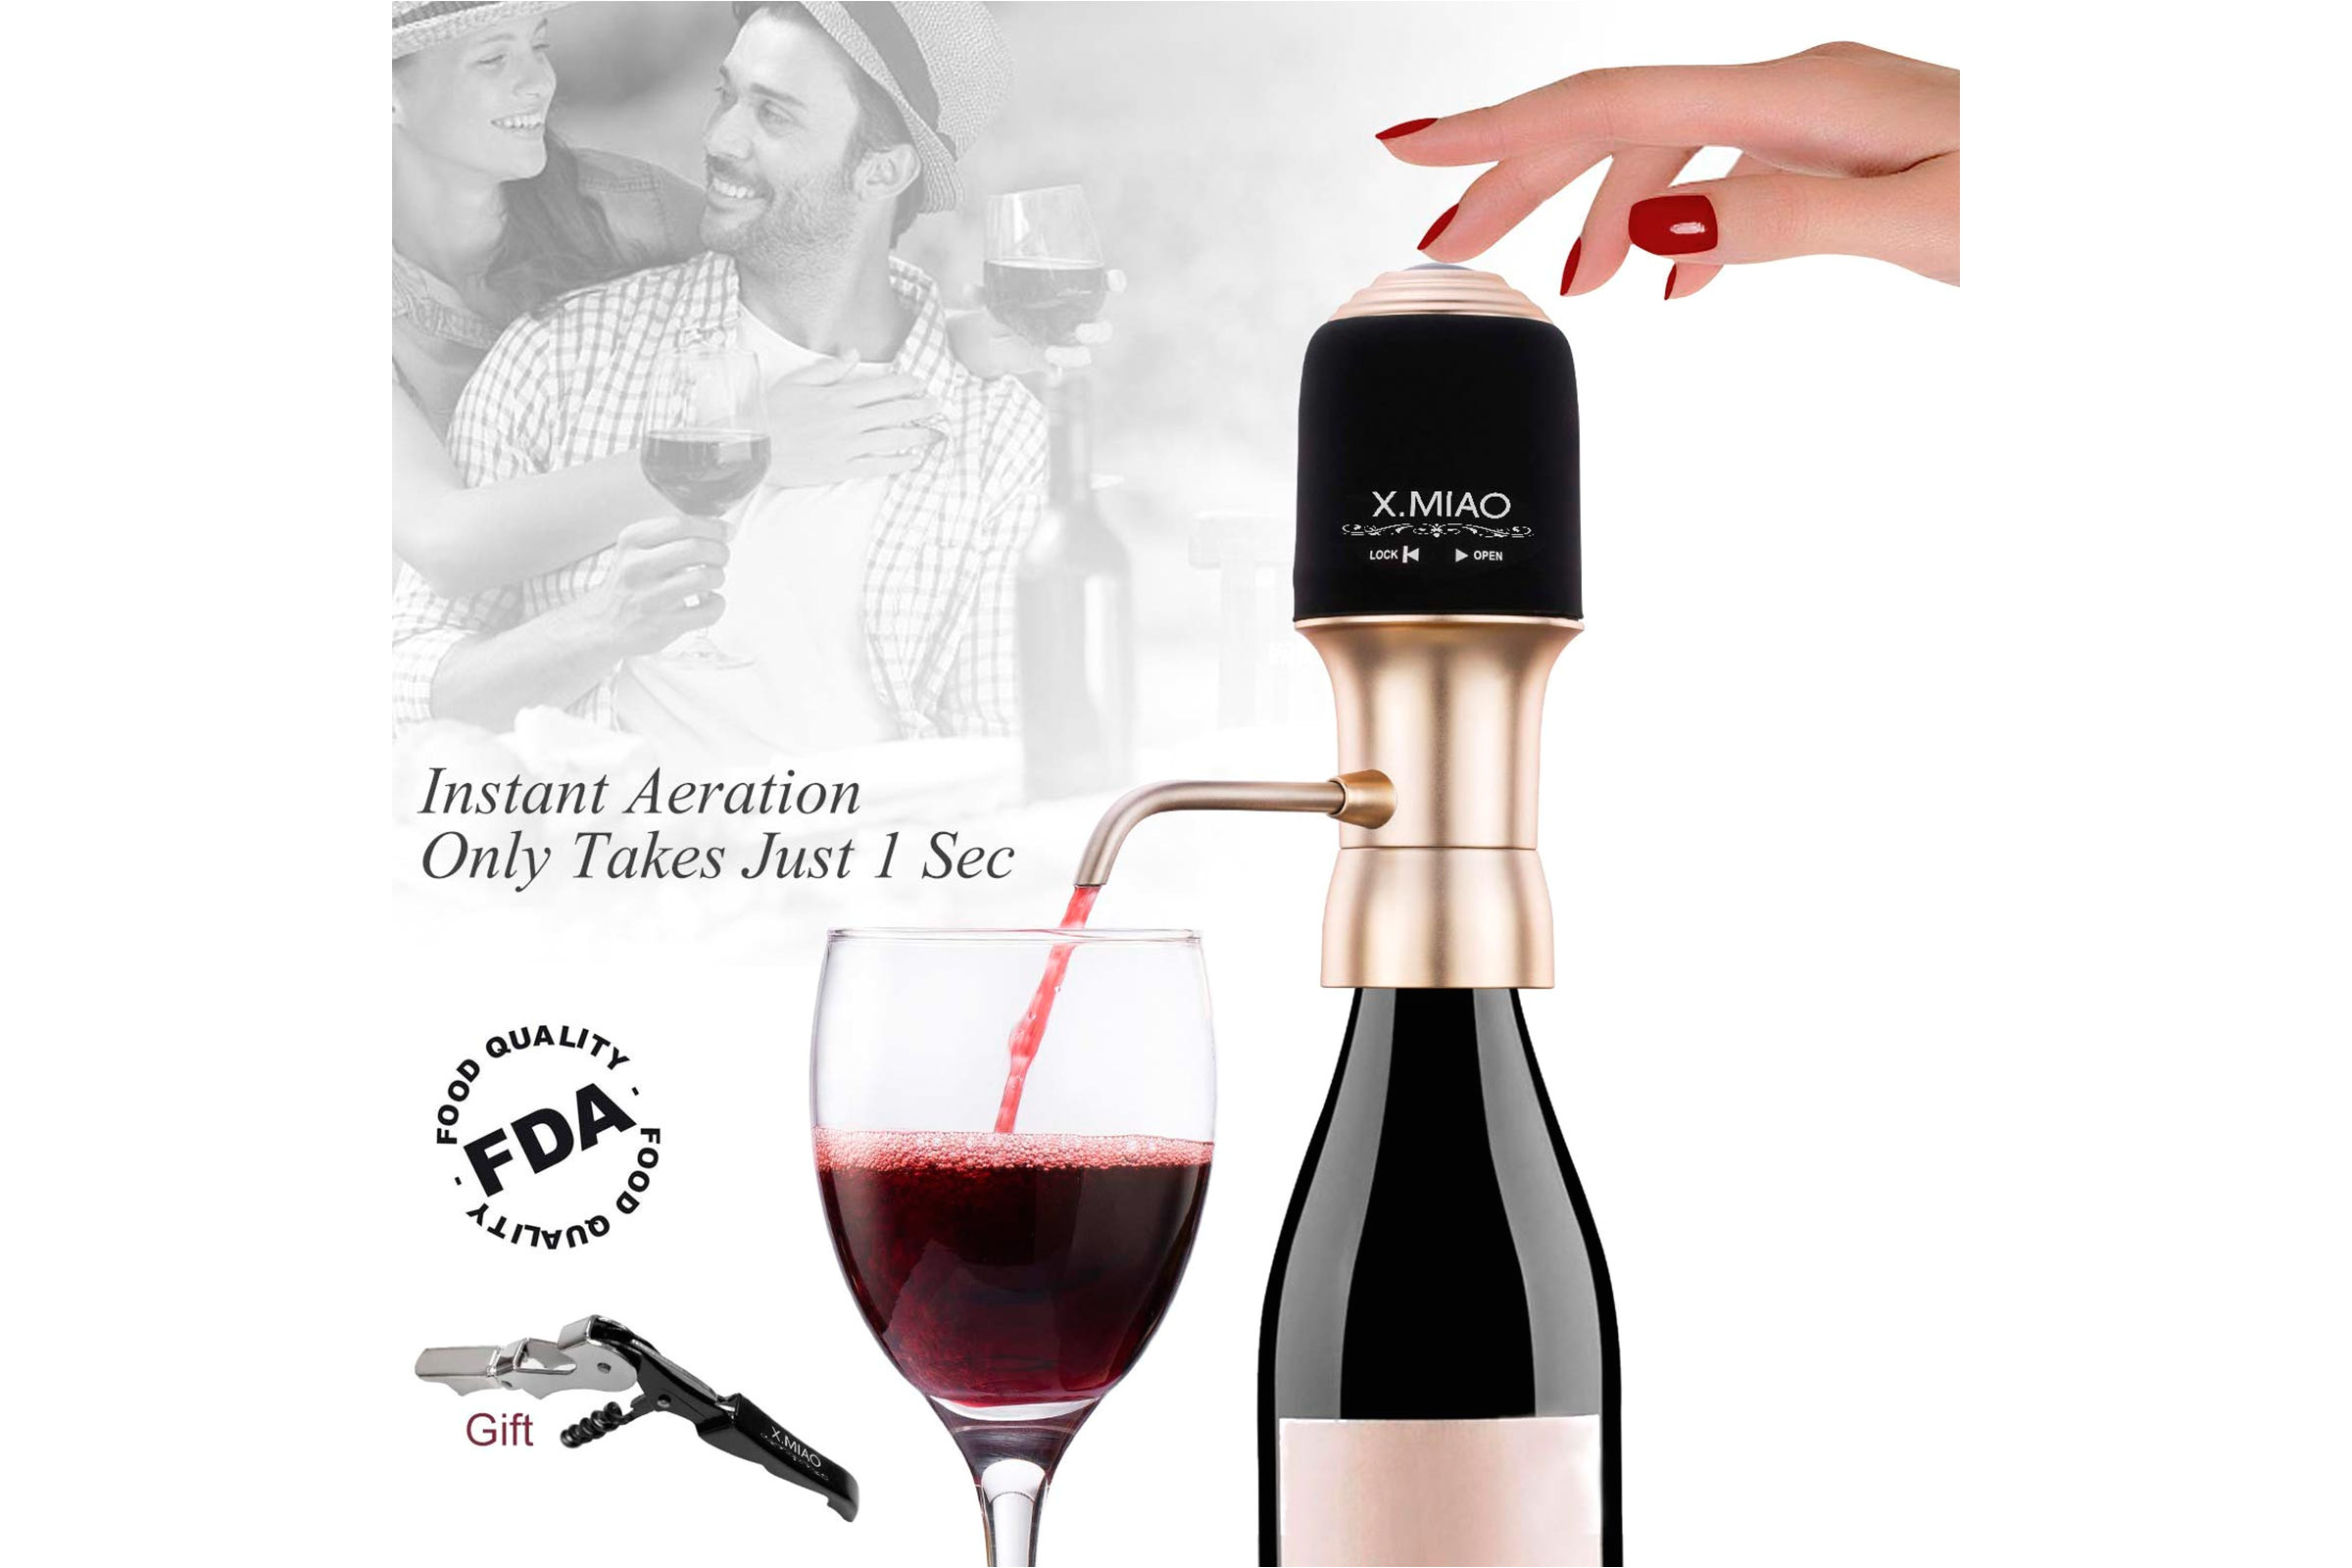 wine dispenser via amazon com